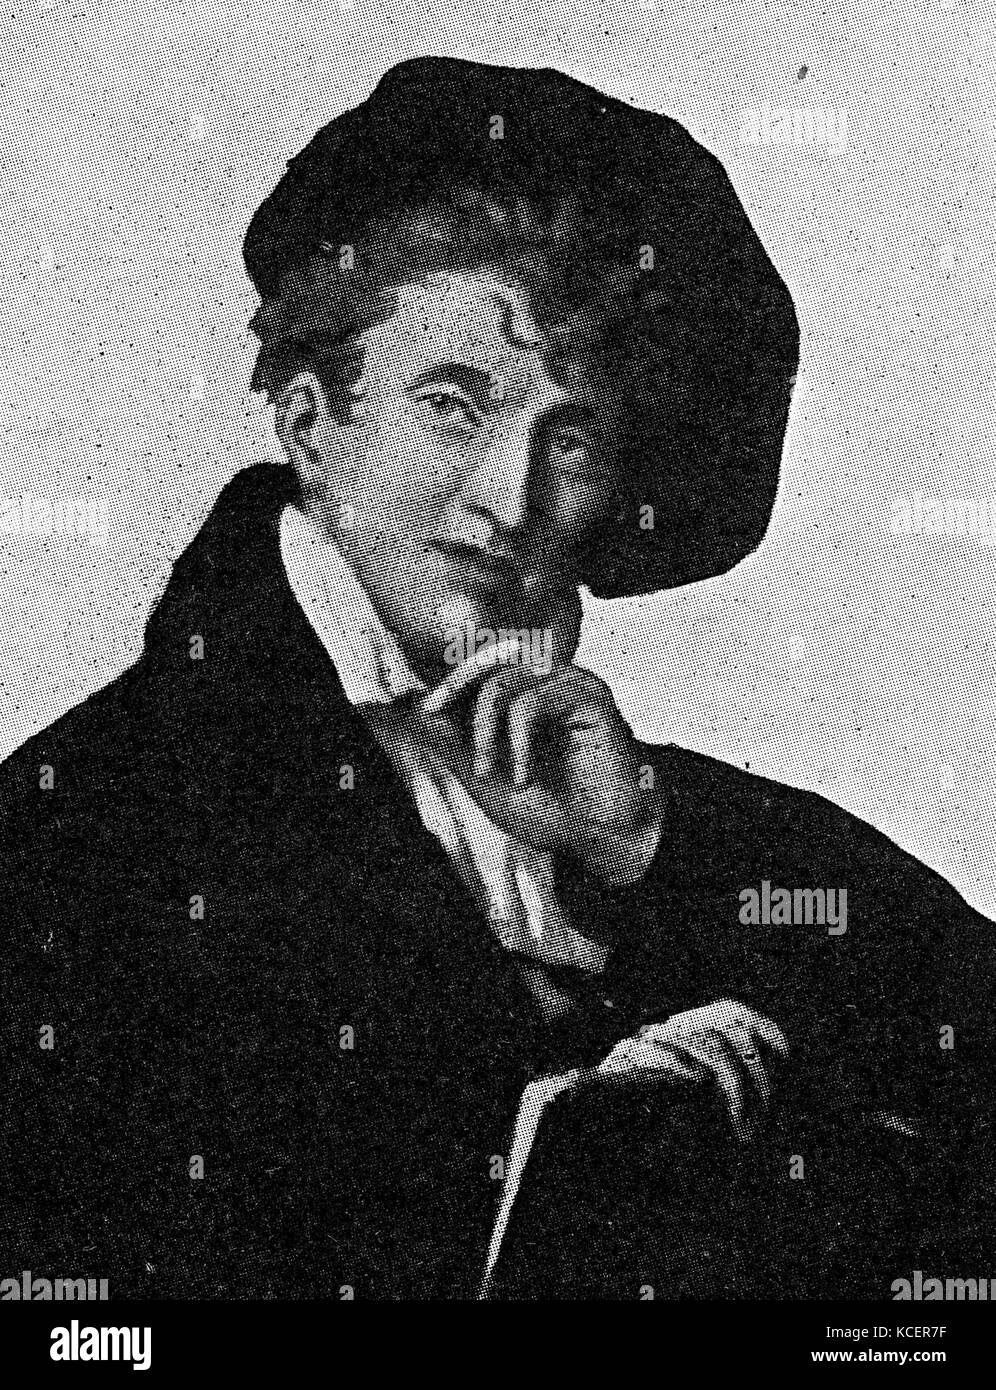 Portrait of Ludwig Geyer (1779-1821) a German actor, playwright, and painter. Dated 19th Century - Stock Image